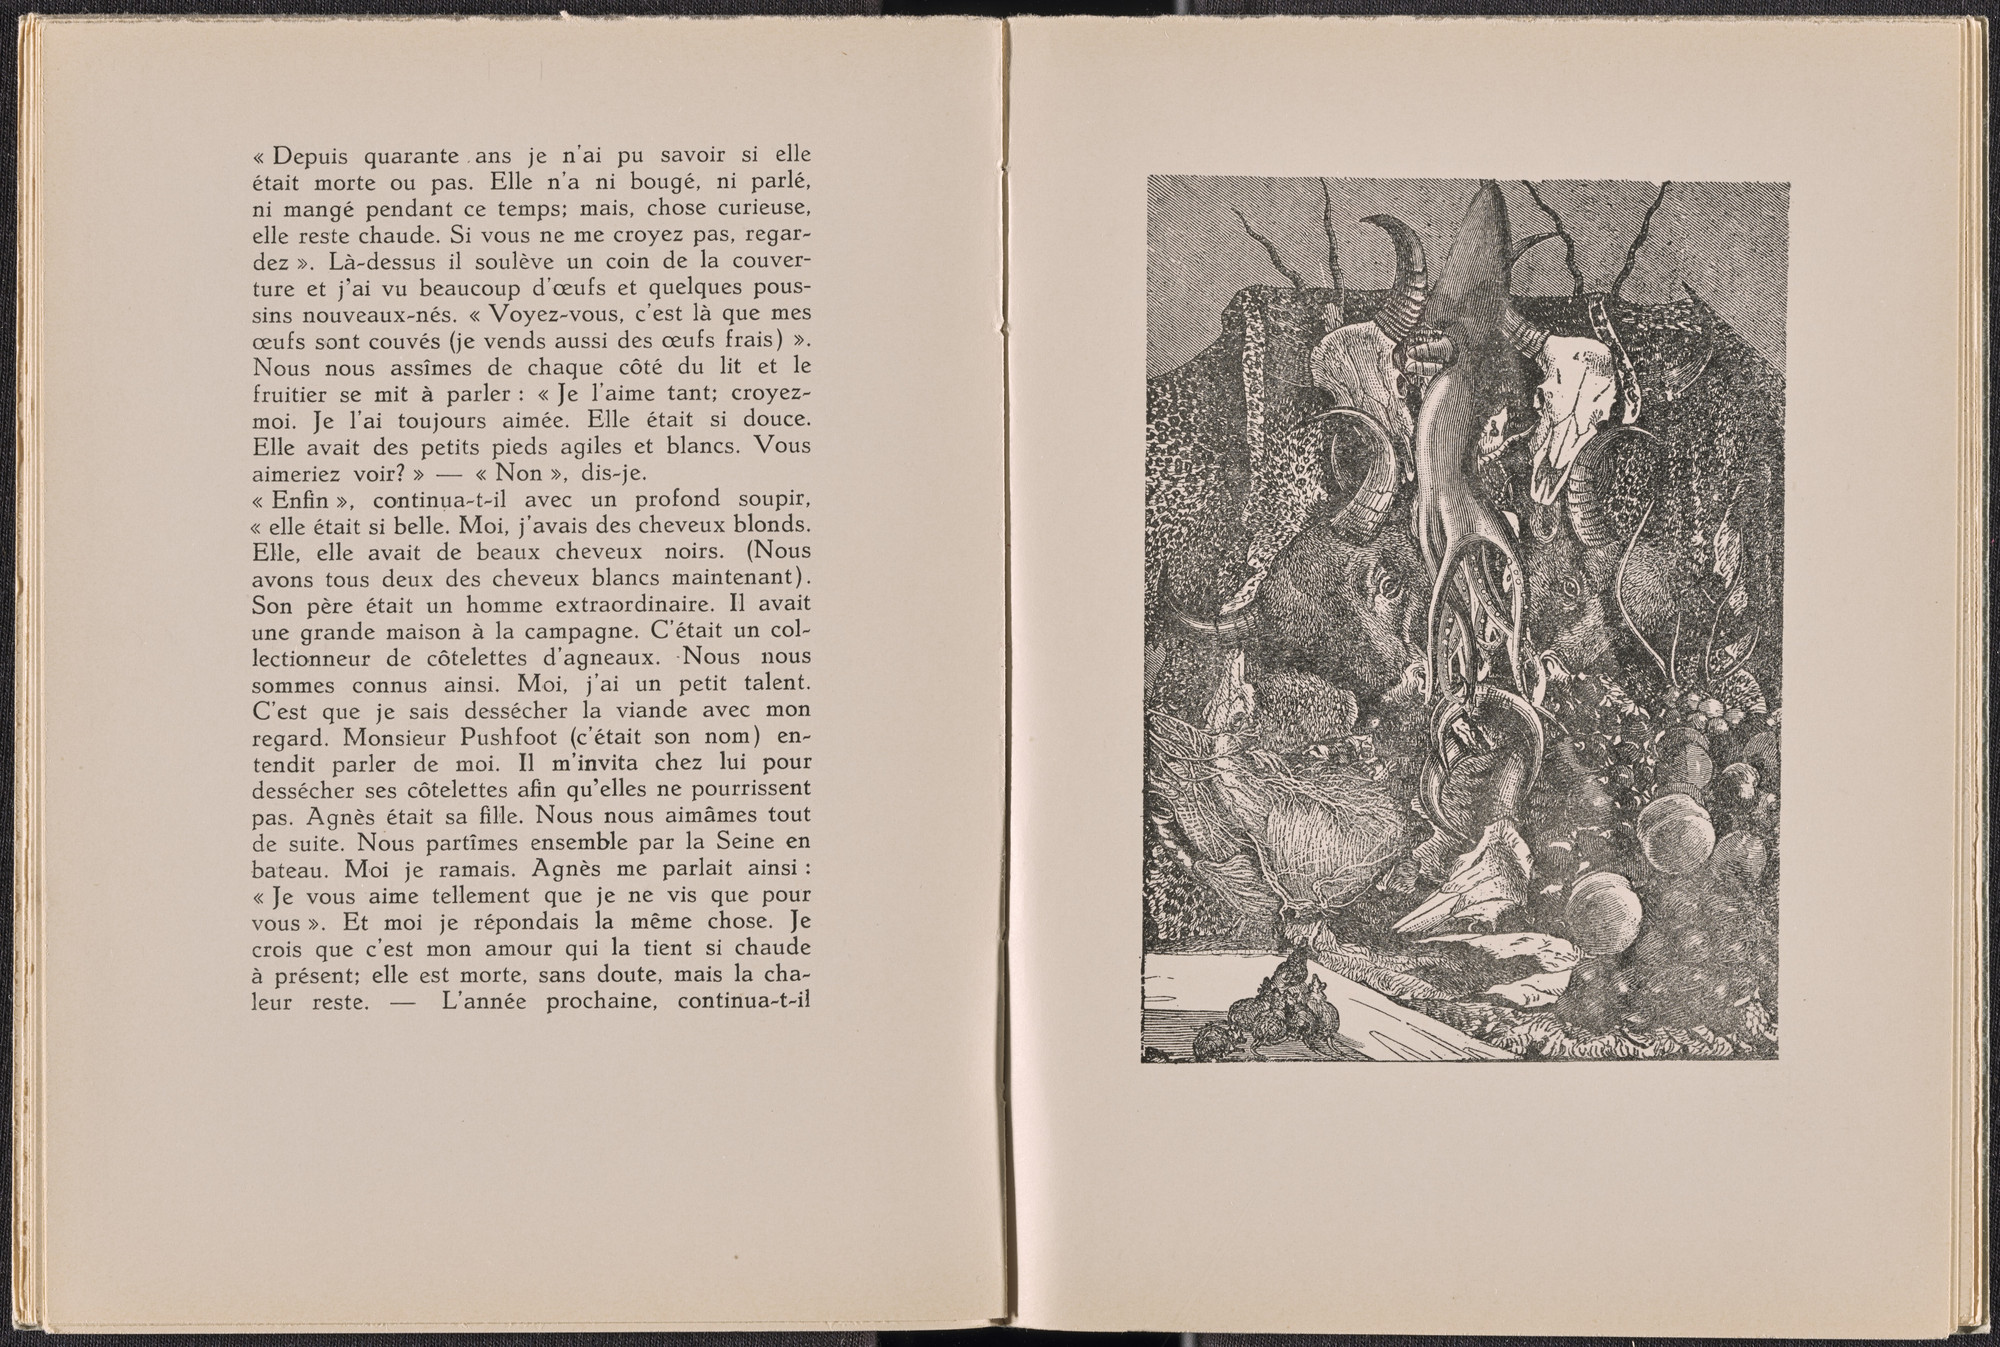 Max Ernst. Plate (folio 19) from La Dame ovale. 1939